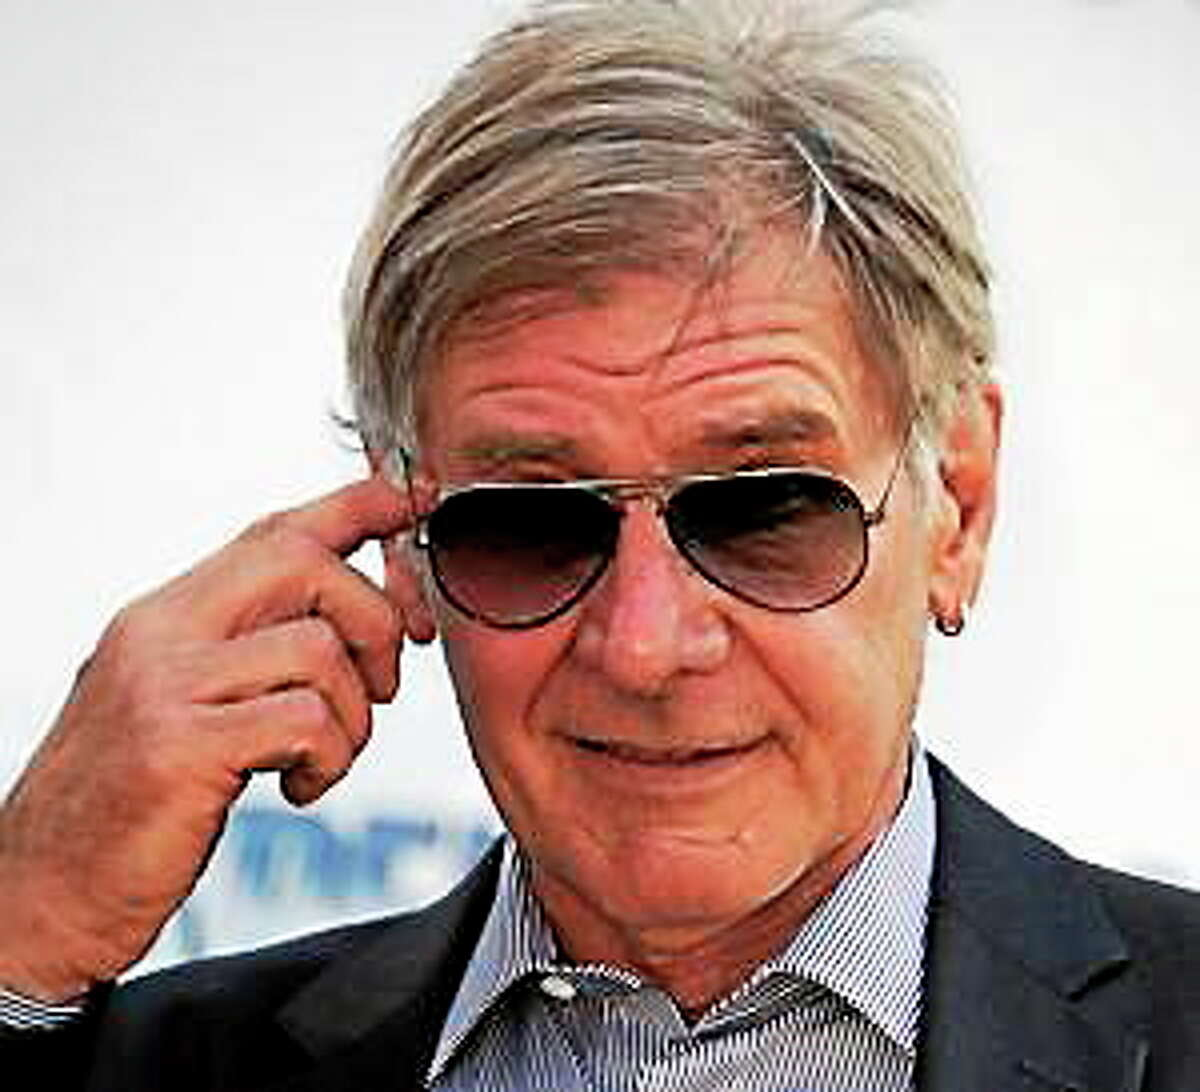 Harrison Ford during a photo call for The Expendables 3 at the 67th international film festival, Cannes, southern France, Sunday, May 18, 2014.